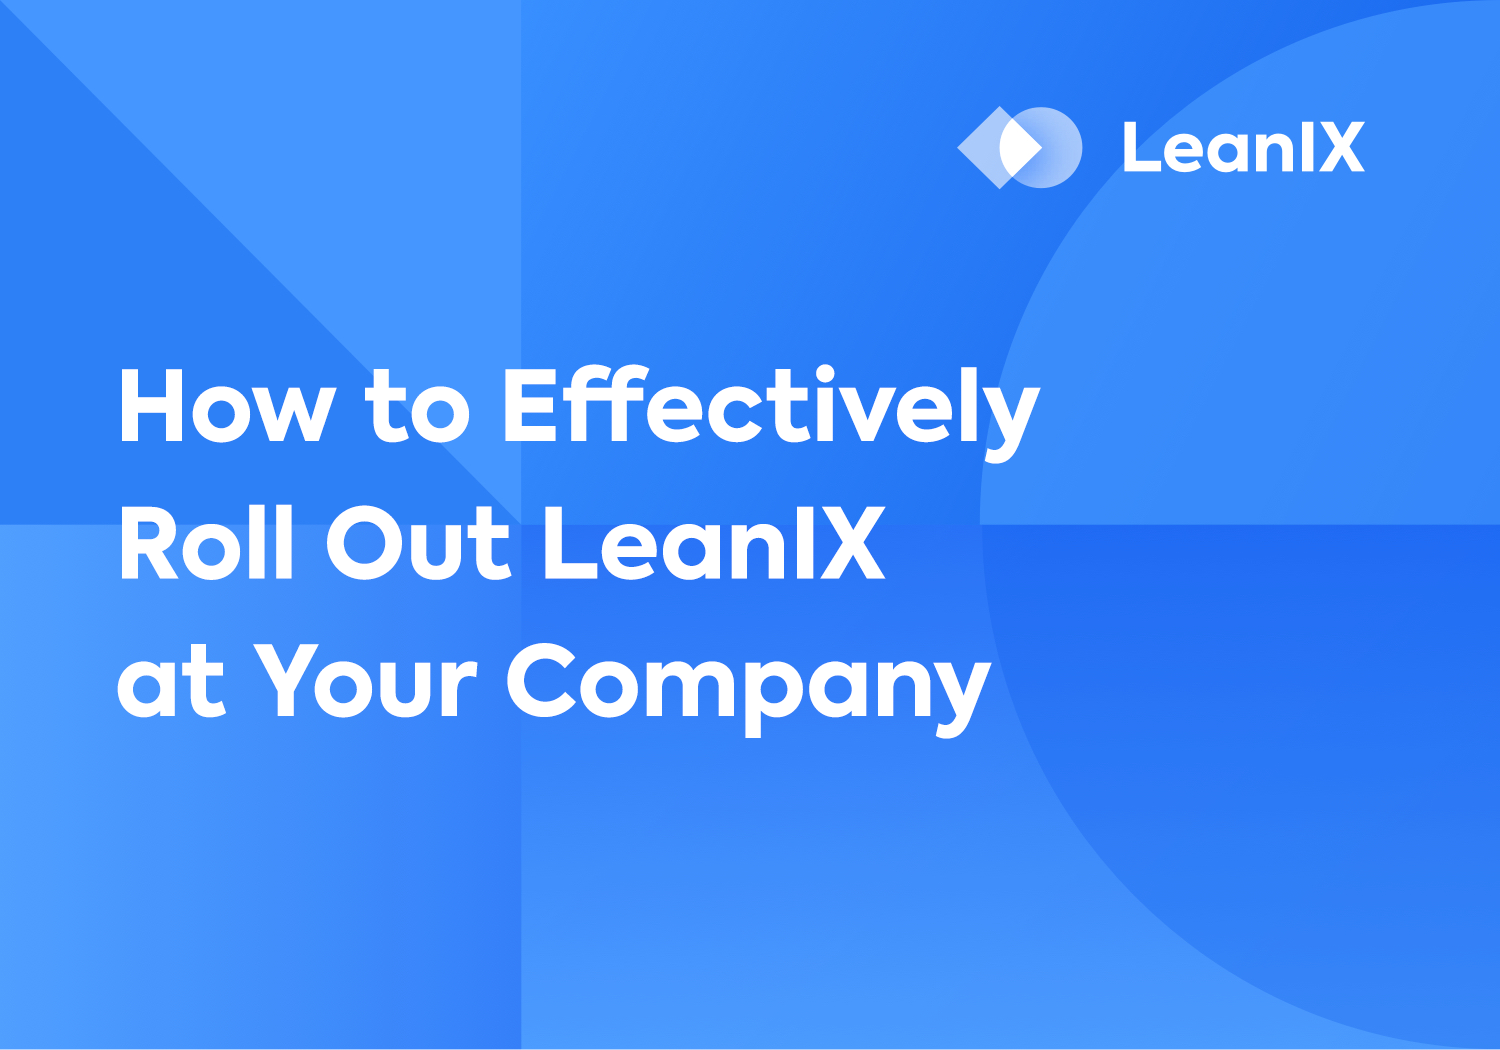 Presentation: How to Effectively Roll Out LeanIX at Your Company